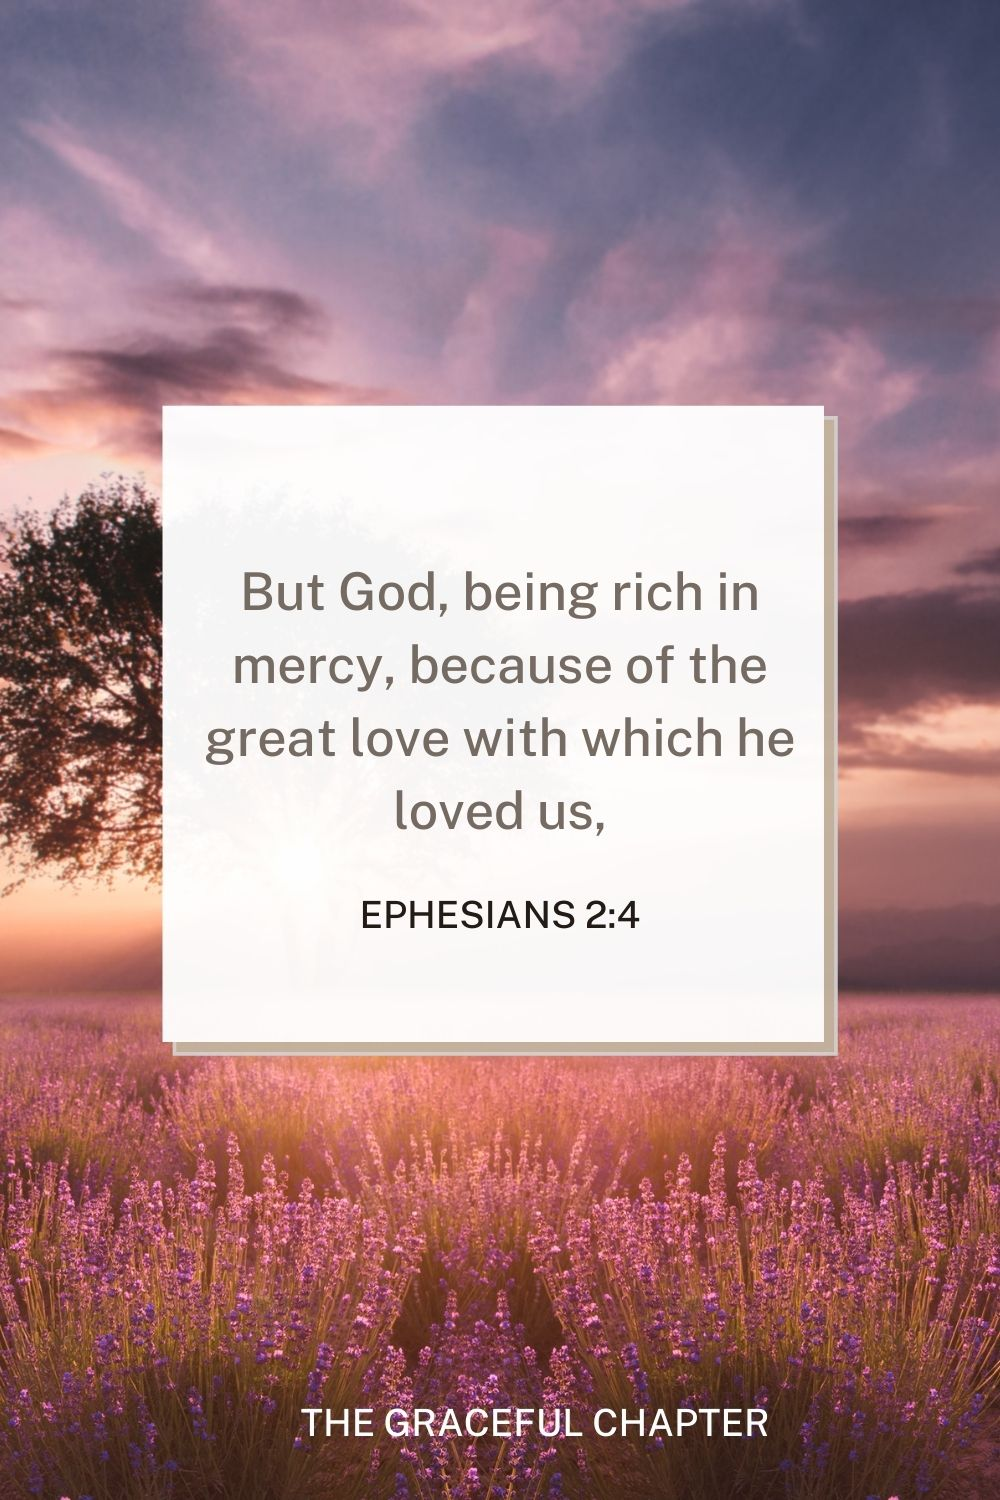 But God, being rich in mercy, because of the great love with which he loved us, Ephesians 2:4